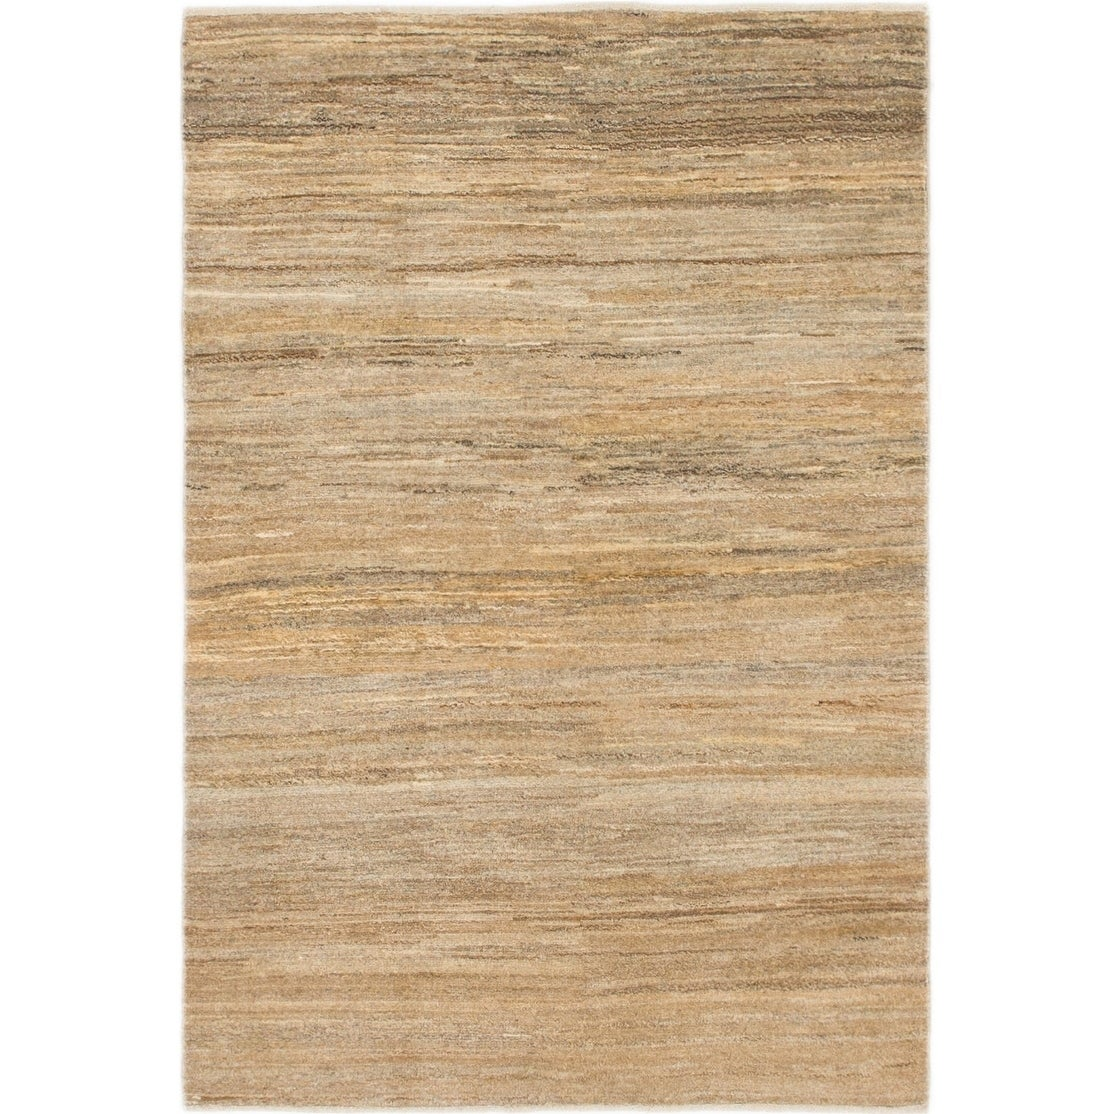 Hand Knotted Kashkuli Gabbeh Wool Area Rug - 3 4 x 5 (Taupe - 3 4 x 5)